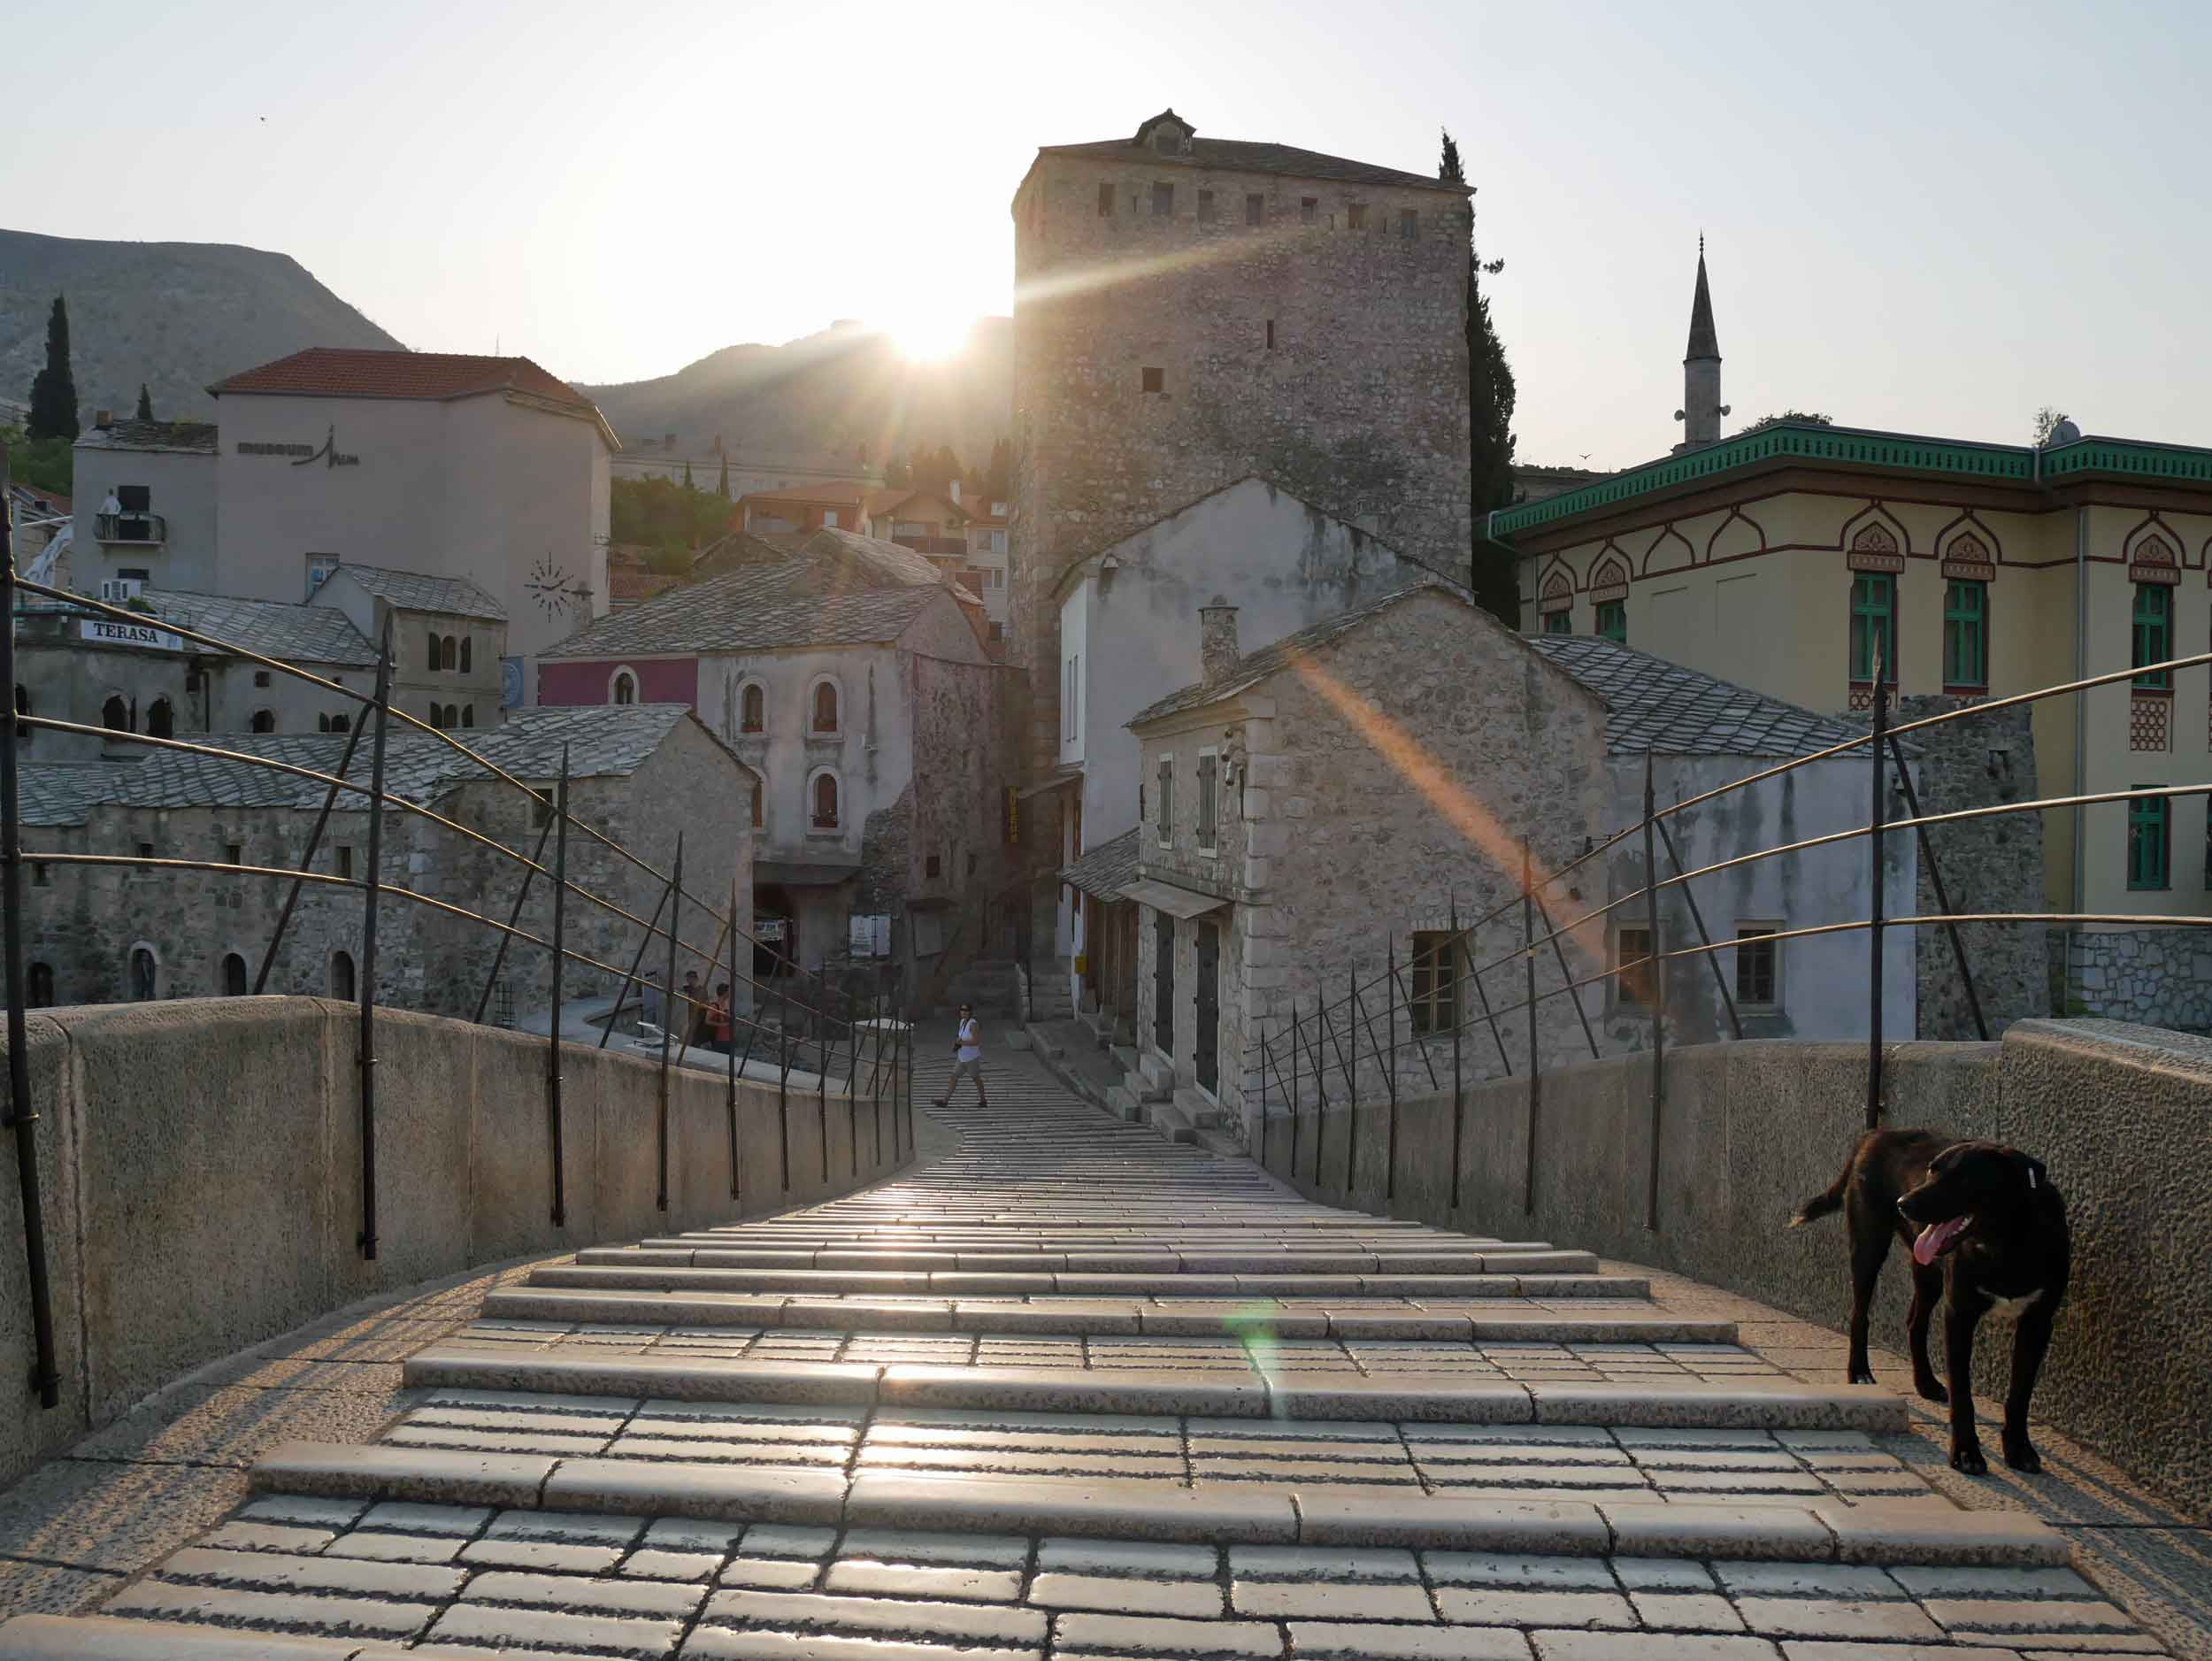 Walking the steeply curved Stari Most (Old Bridge), a medieval arched bridge from which the town Mostar gets it's name.